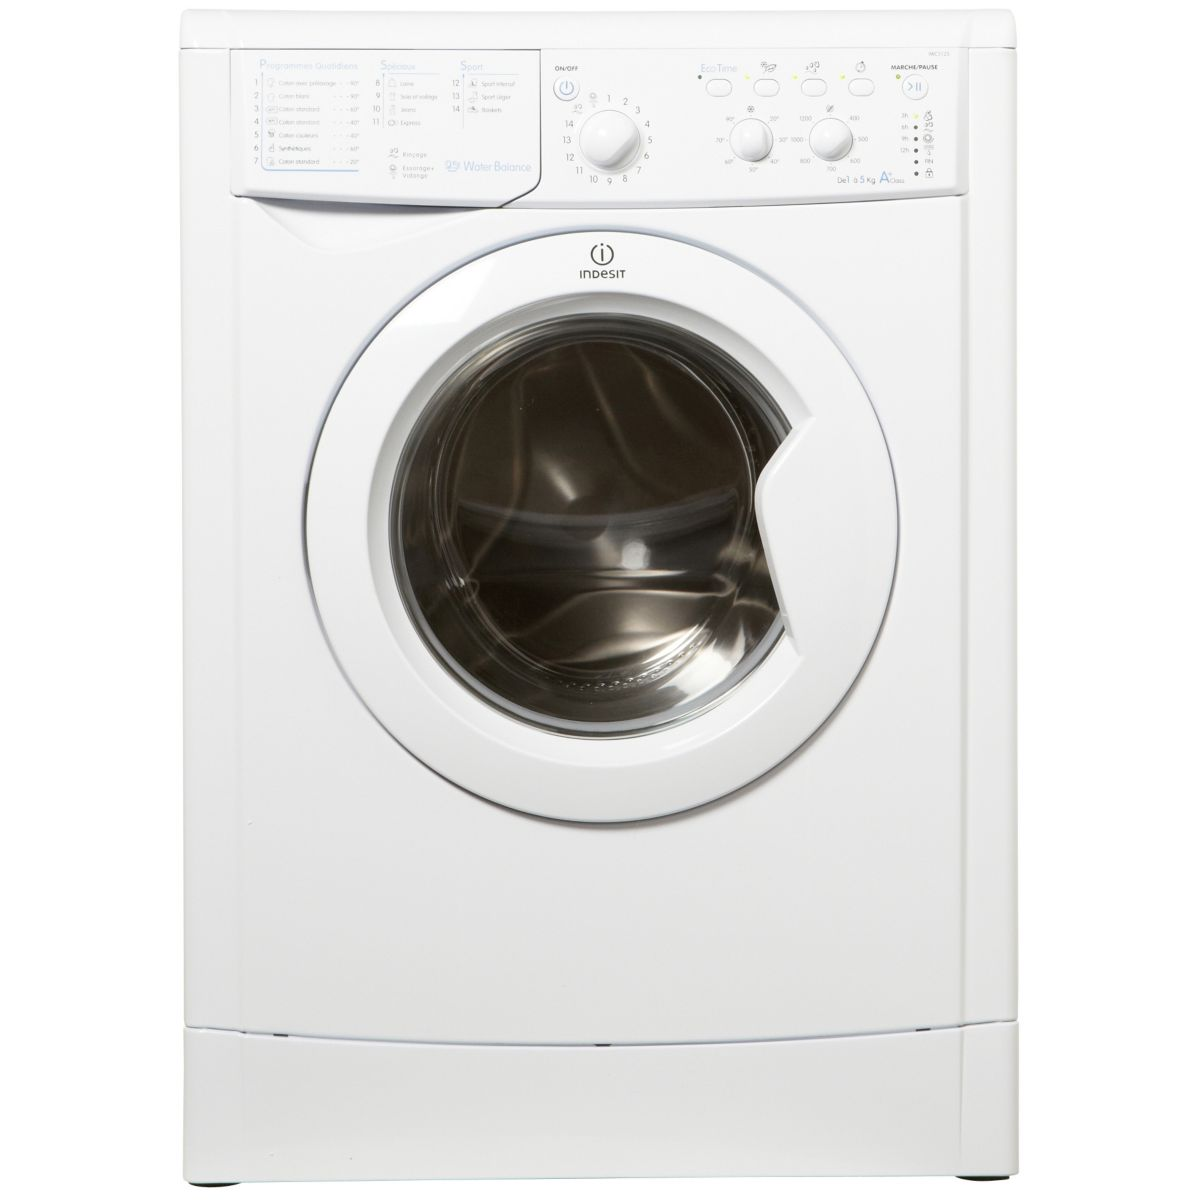 indesit iwc5125 lave linge frontal 5 kg comparer avec. Black Bedroom Furniture Sets. Home Design Ideas